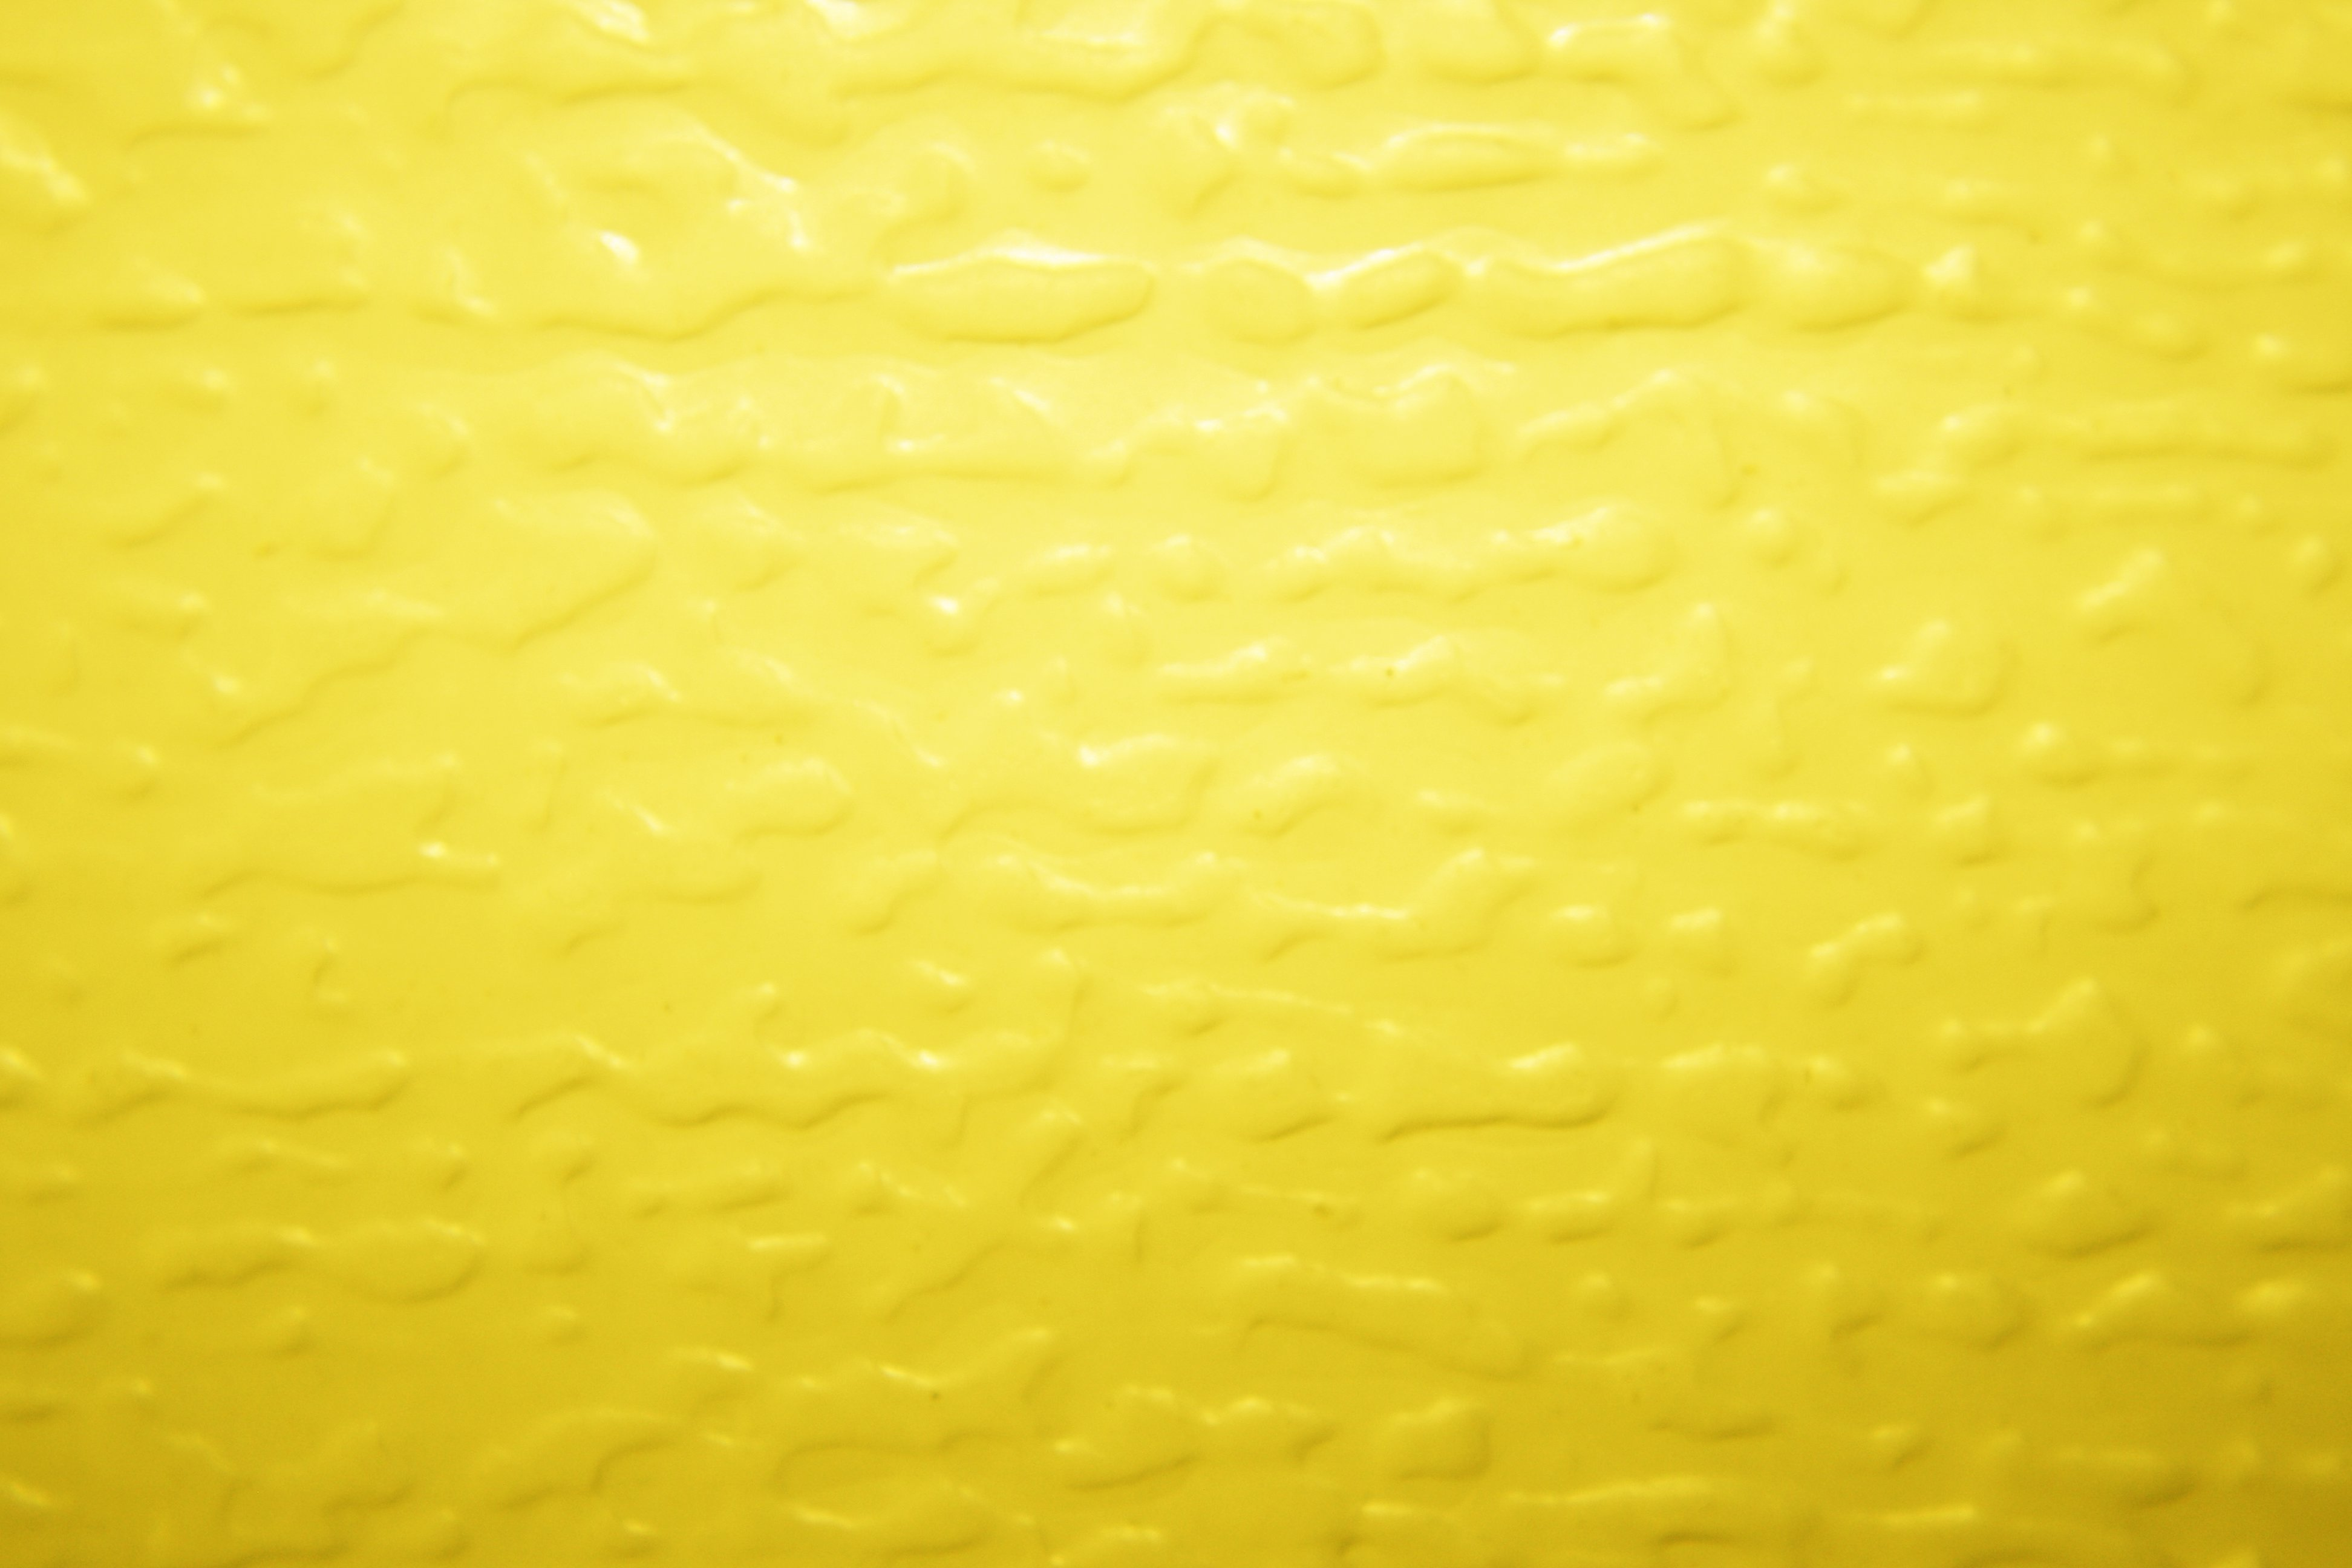 yellow texture background #949